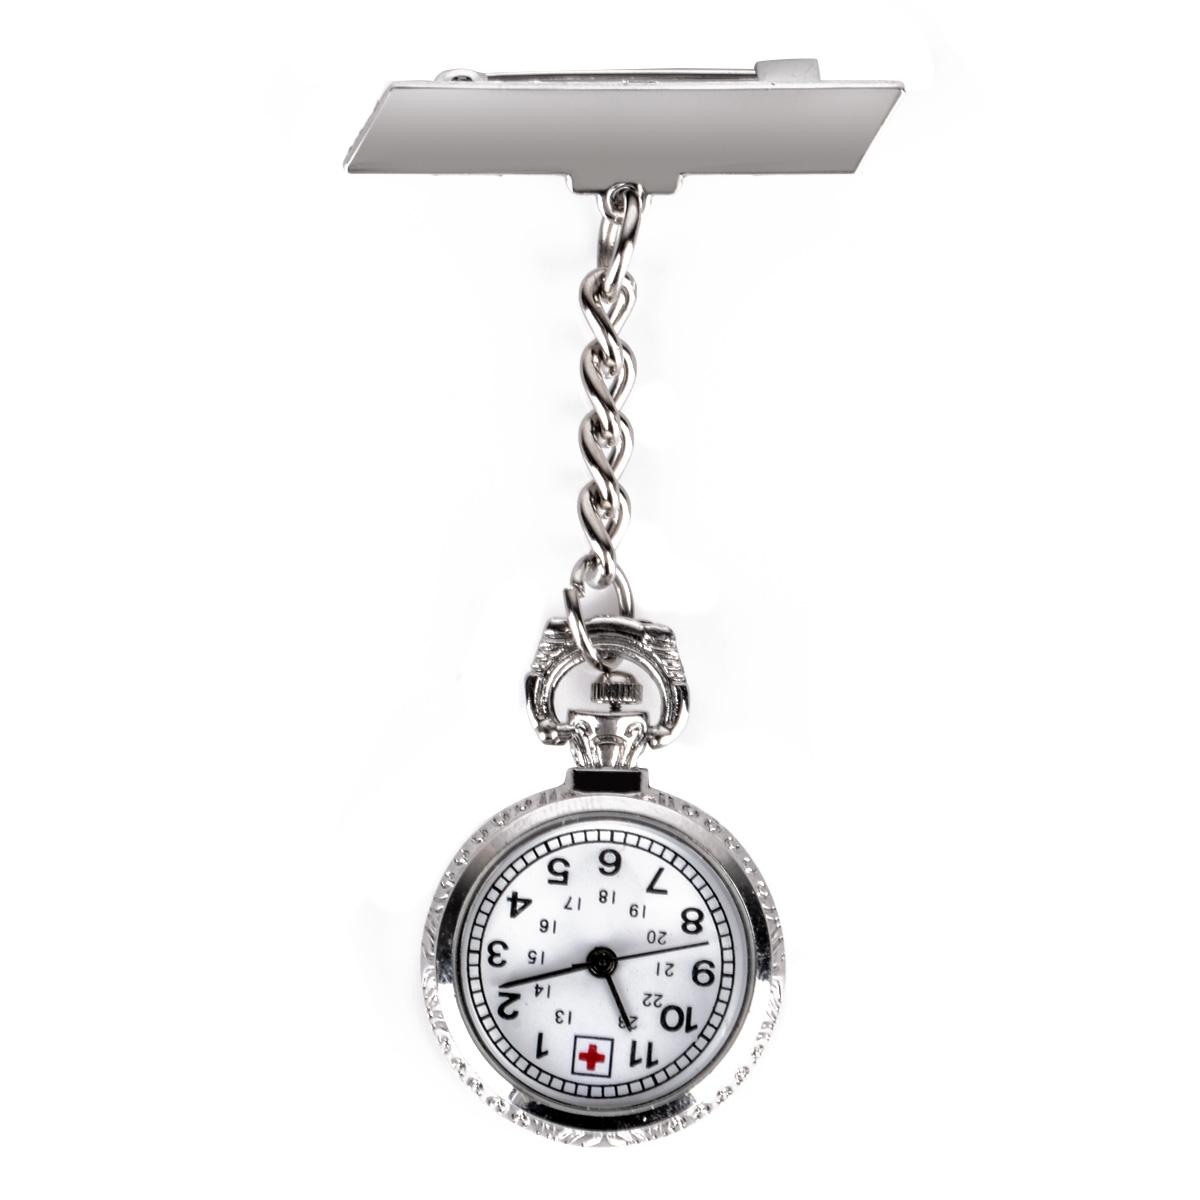 Pocket Watch Simple Silver Color Metal Chain Clip On Pendant Chain Pocket Fob Watches For Medical Doctor Nurse Beauticians Clock